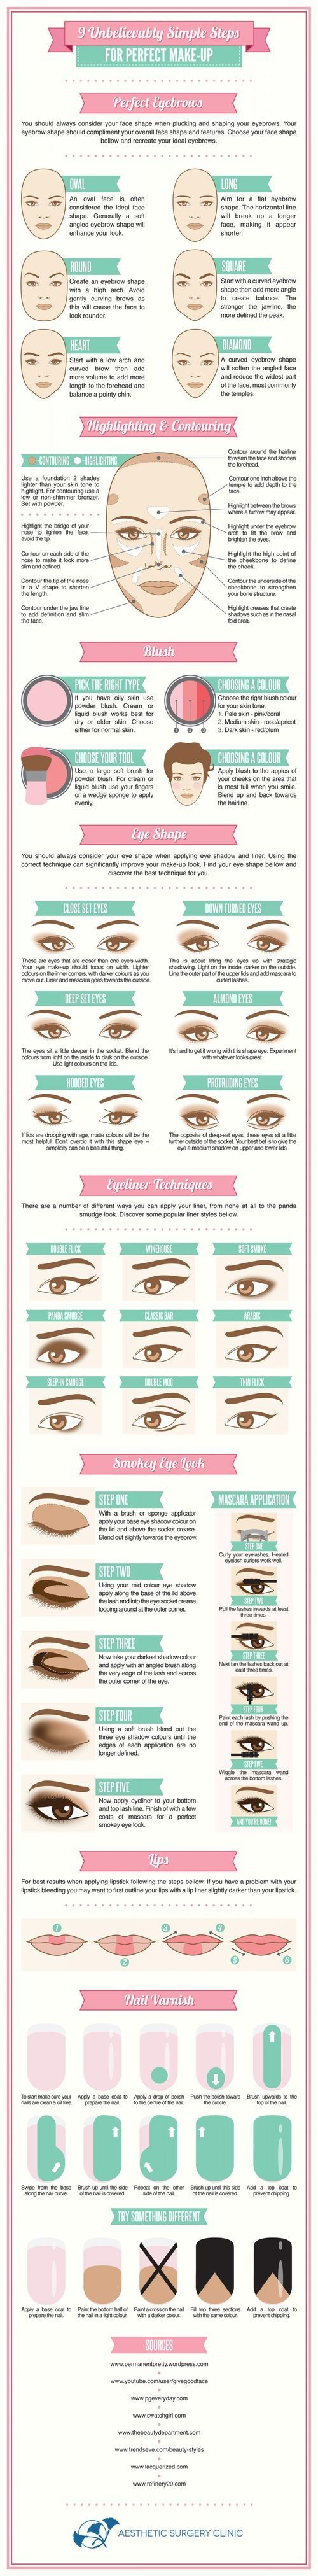 How to dress for your face